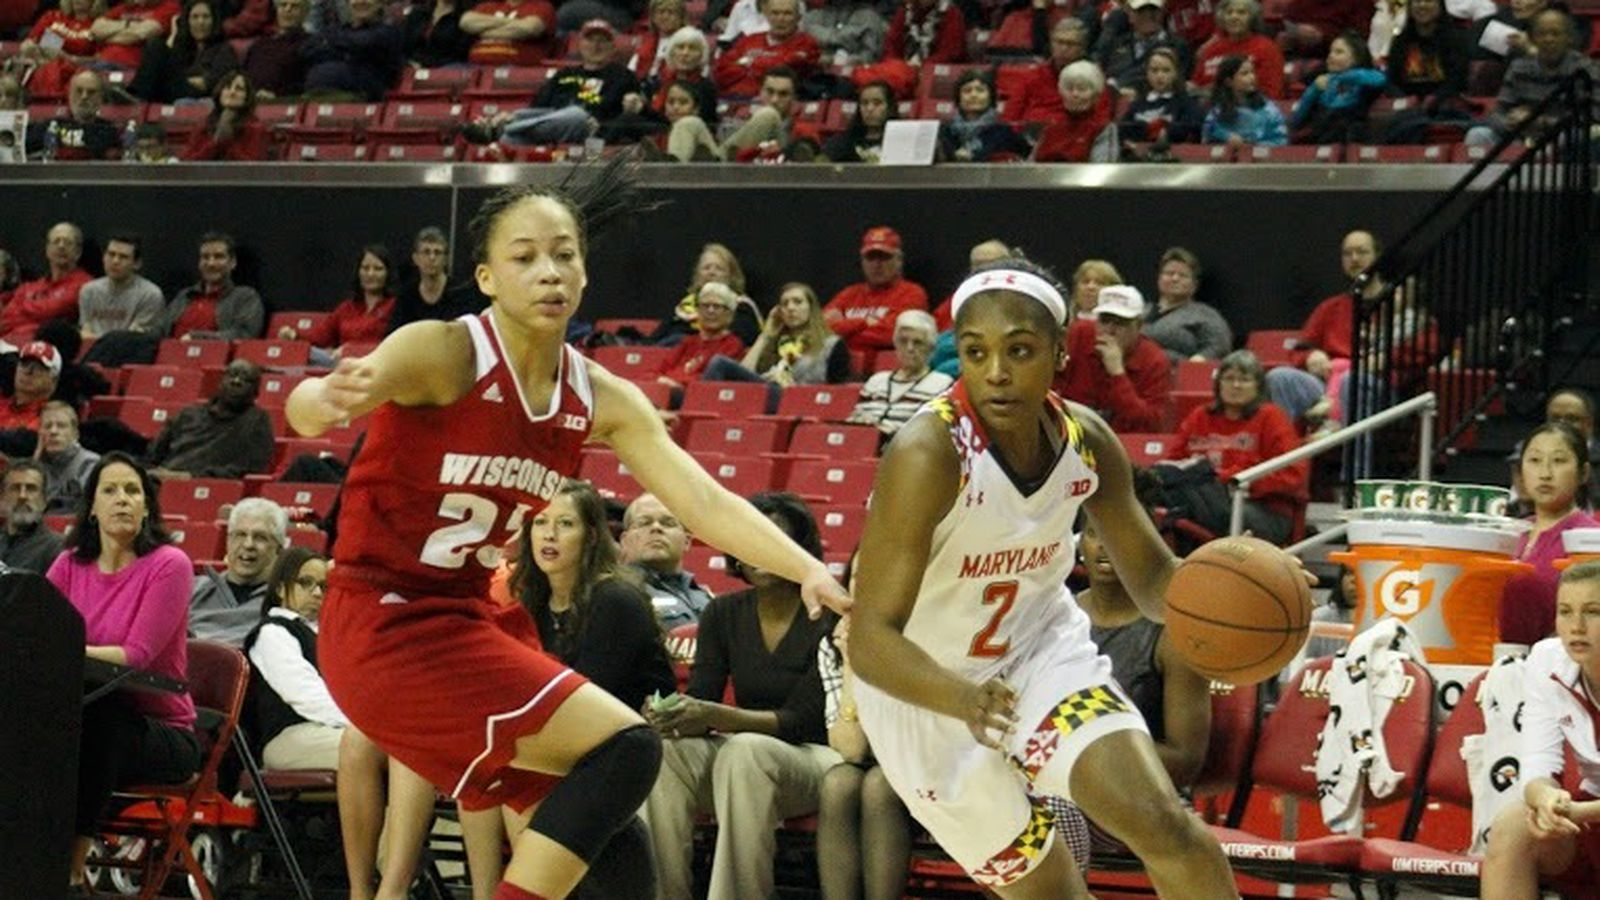 Kiara Leslie leaves Maryland women's basketball for NC State as graduate transfer - Testudo Times